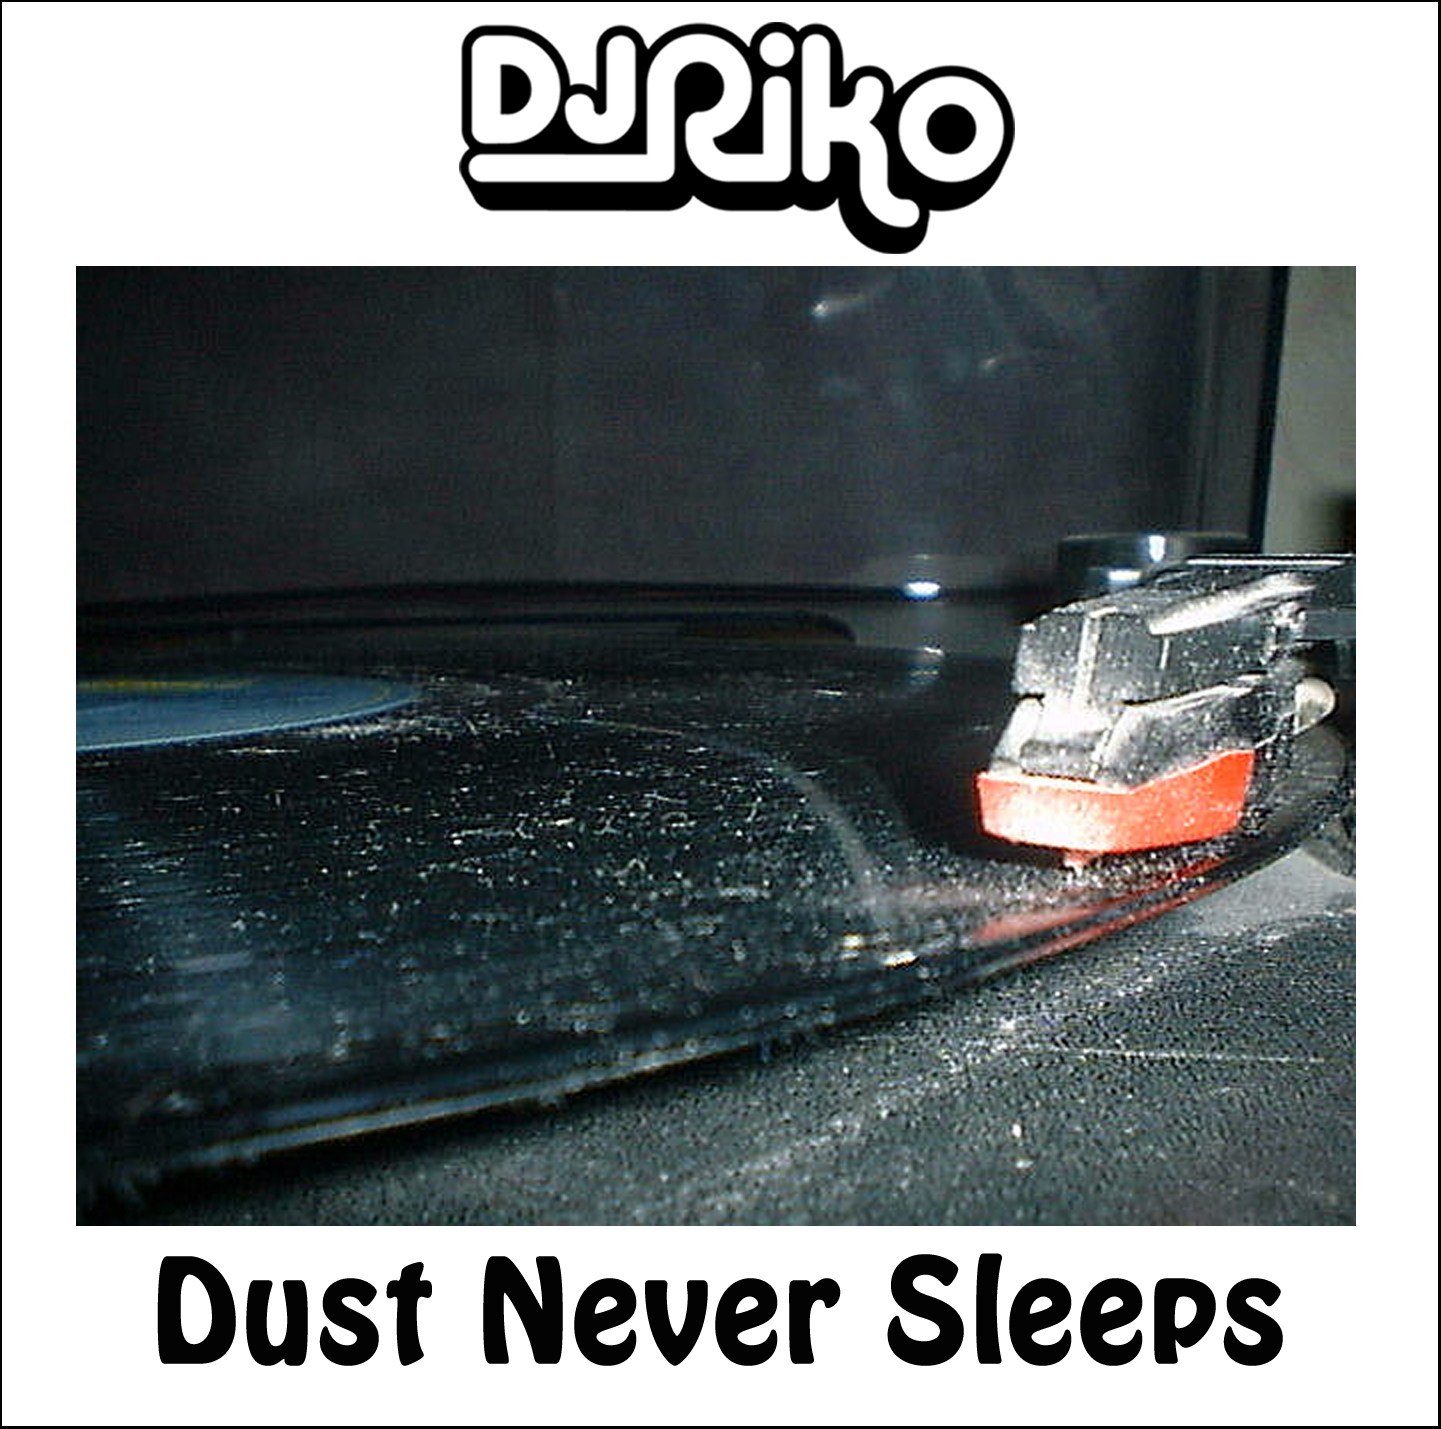 Dust Never Sleeps